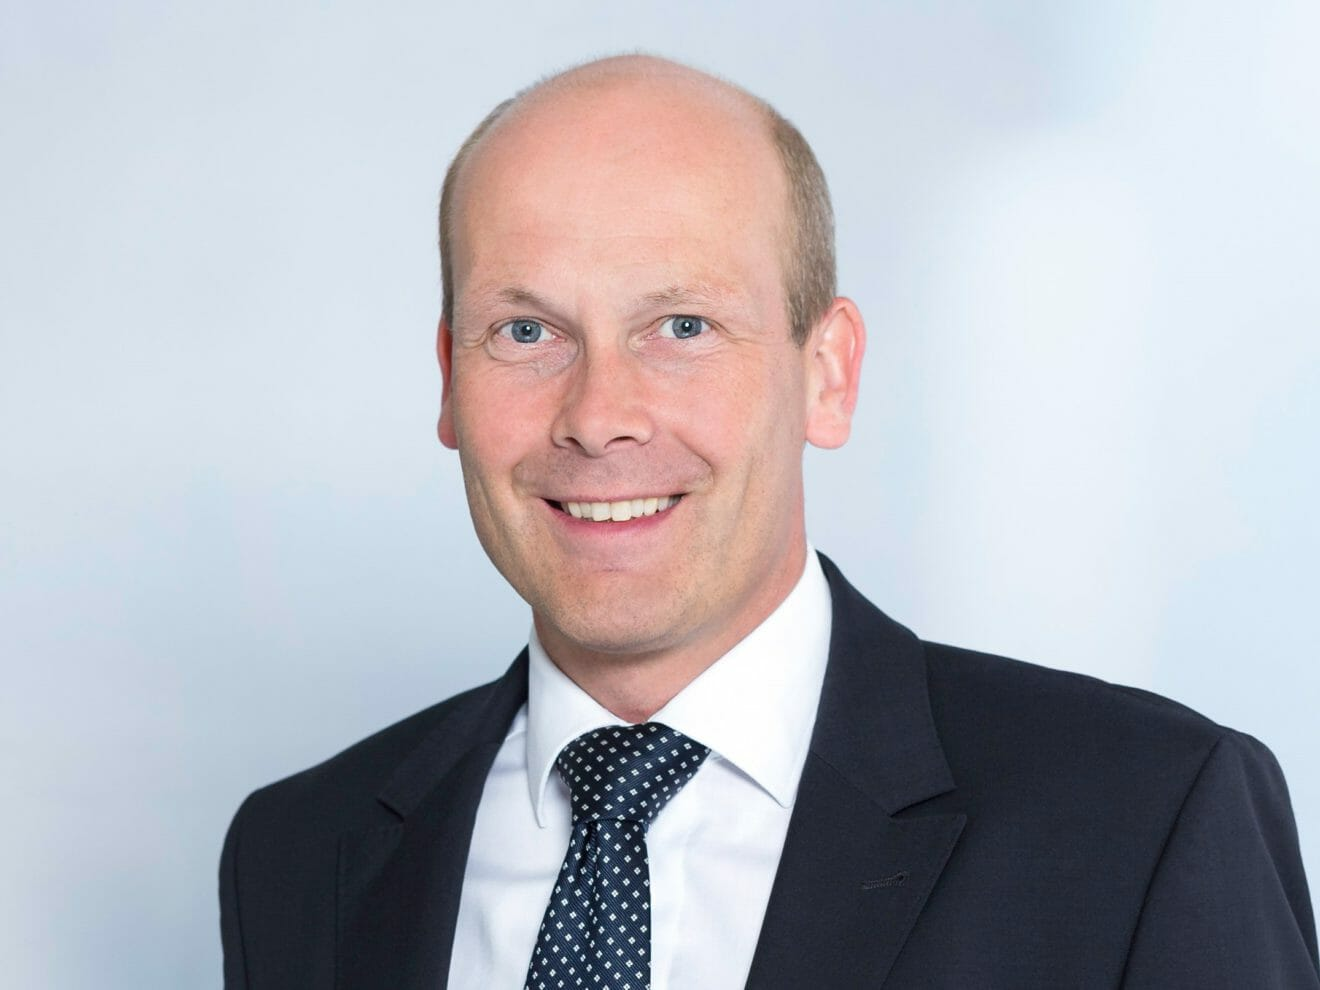 Christian Schallenberg ist CTO und Product Line Manager Cloud bei LANCOM Systems. (c) LANCOM Systems